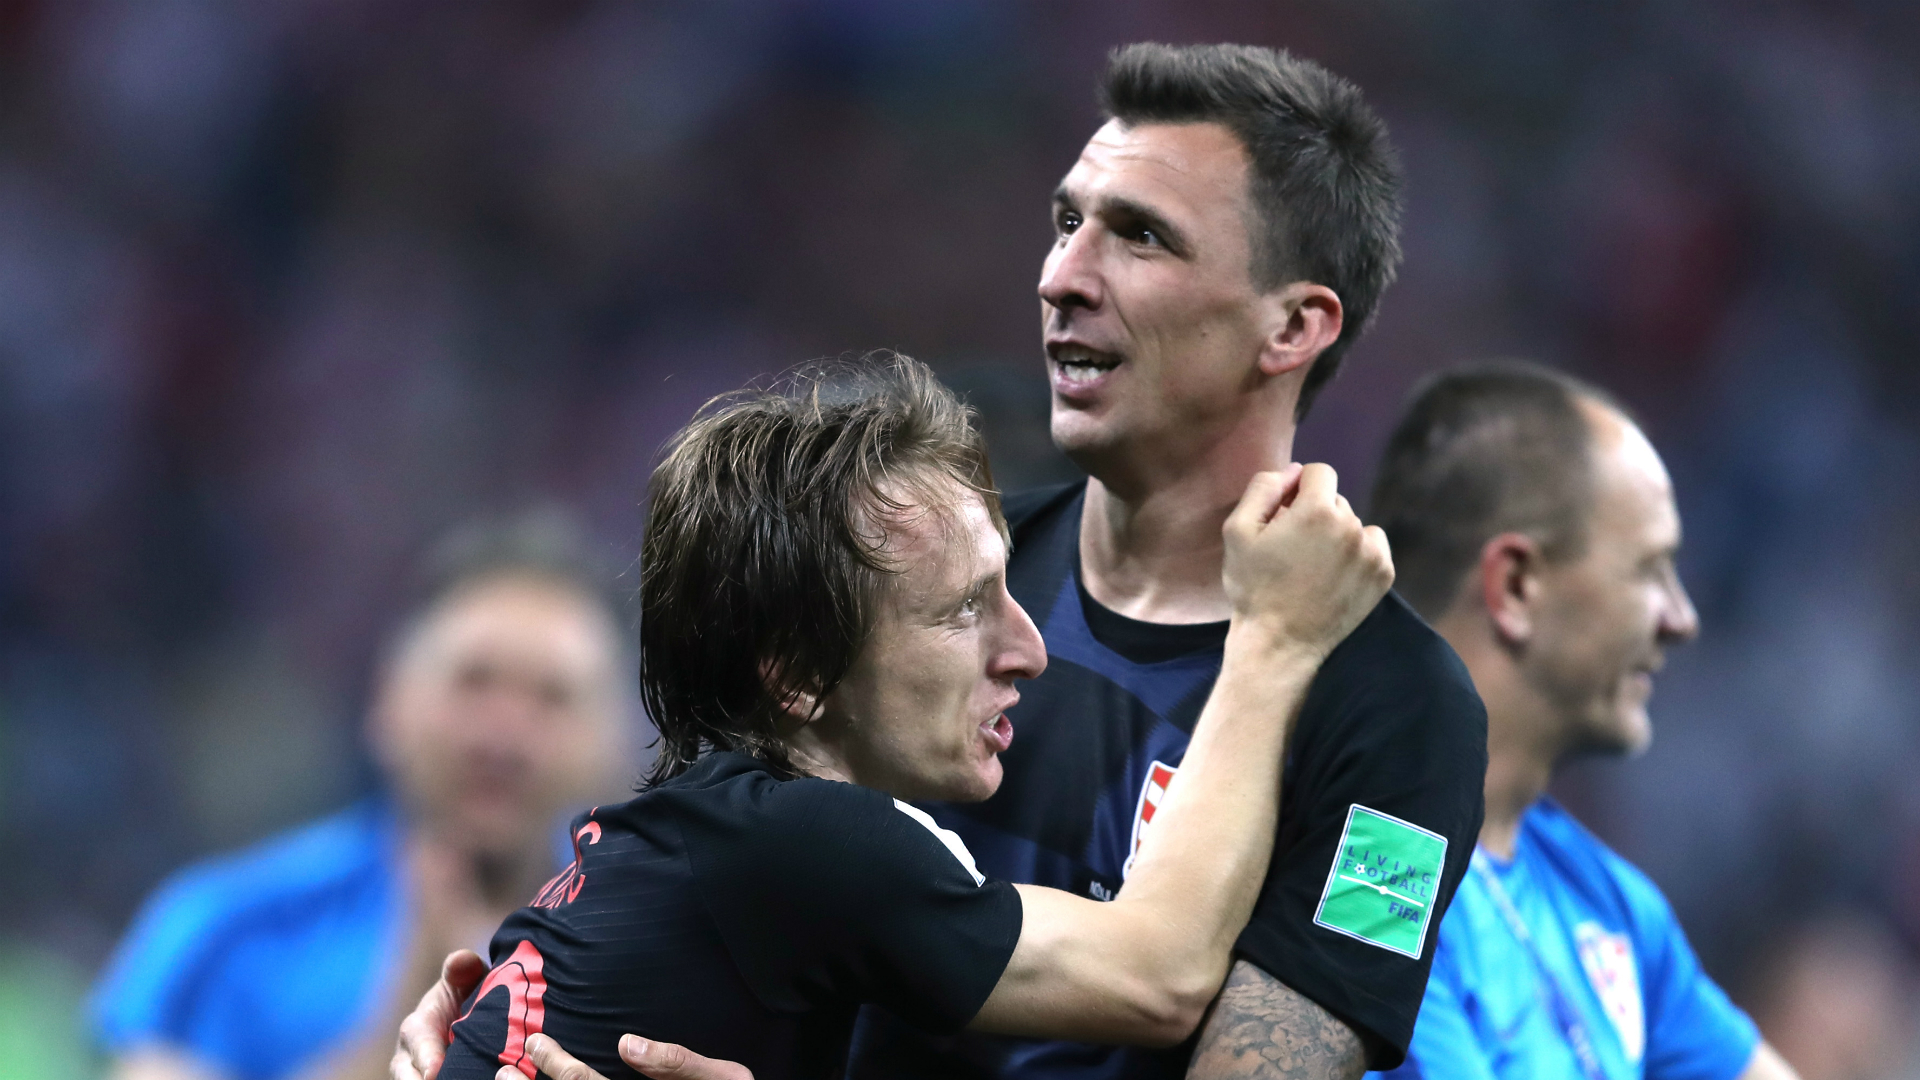 This Is the Most Tender Photo of the World Cup So Far